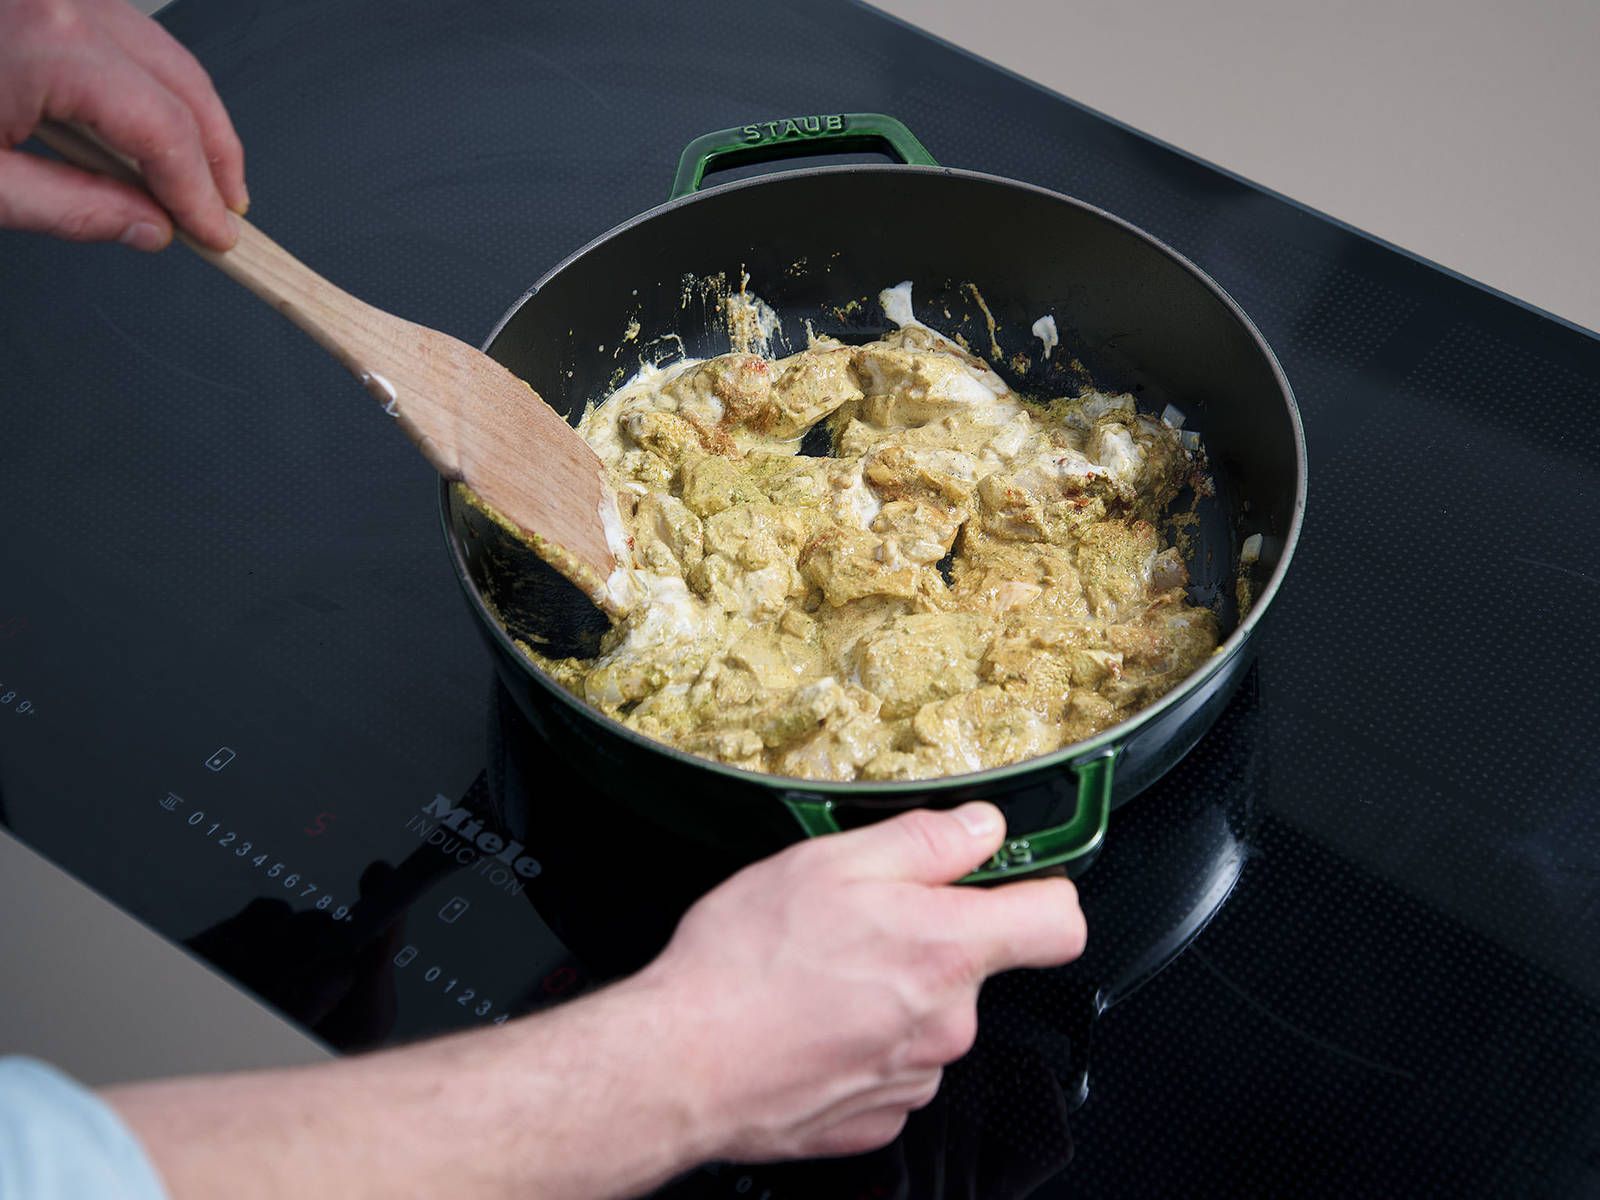 Peel and finely dice onion. Heat oil in a frying pan. Add onions and sauté for approx. 2 min. Add cumin seeds, chicken, tomato paste, and masala. Stir to combine and cook for approx. 8 min. Season to taste with salt.